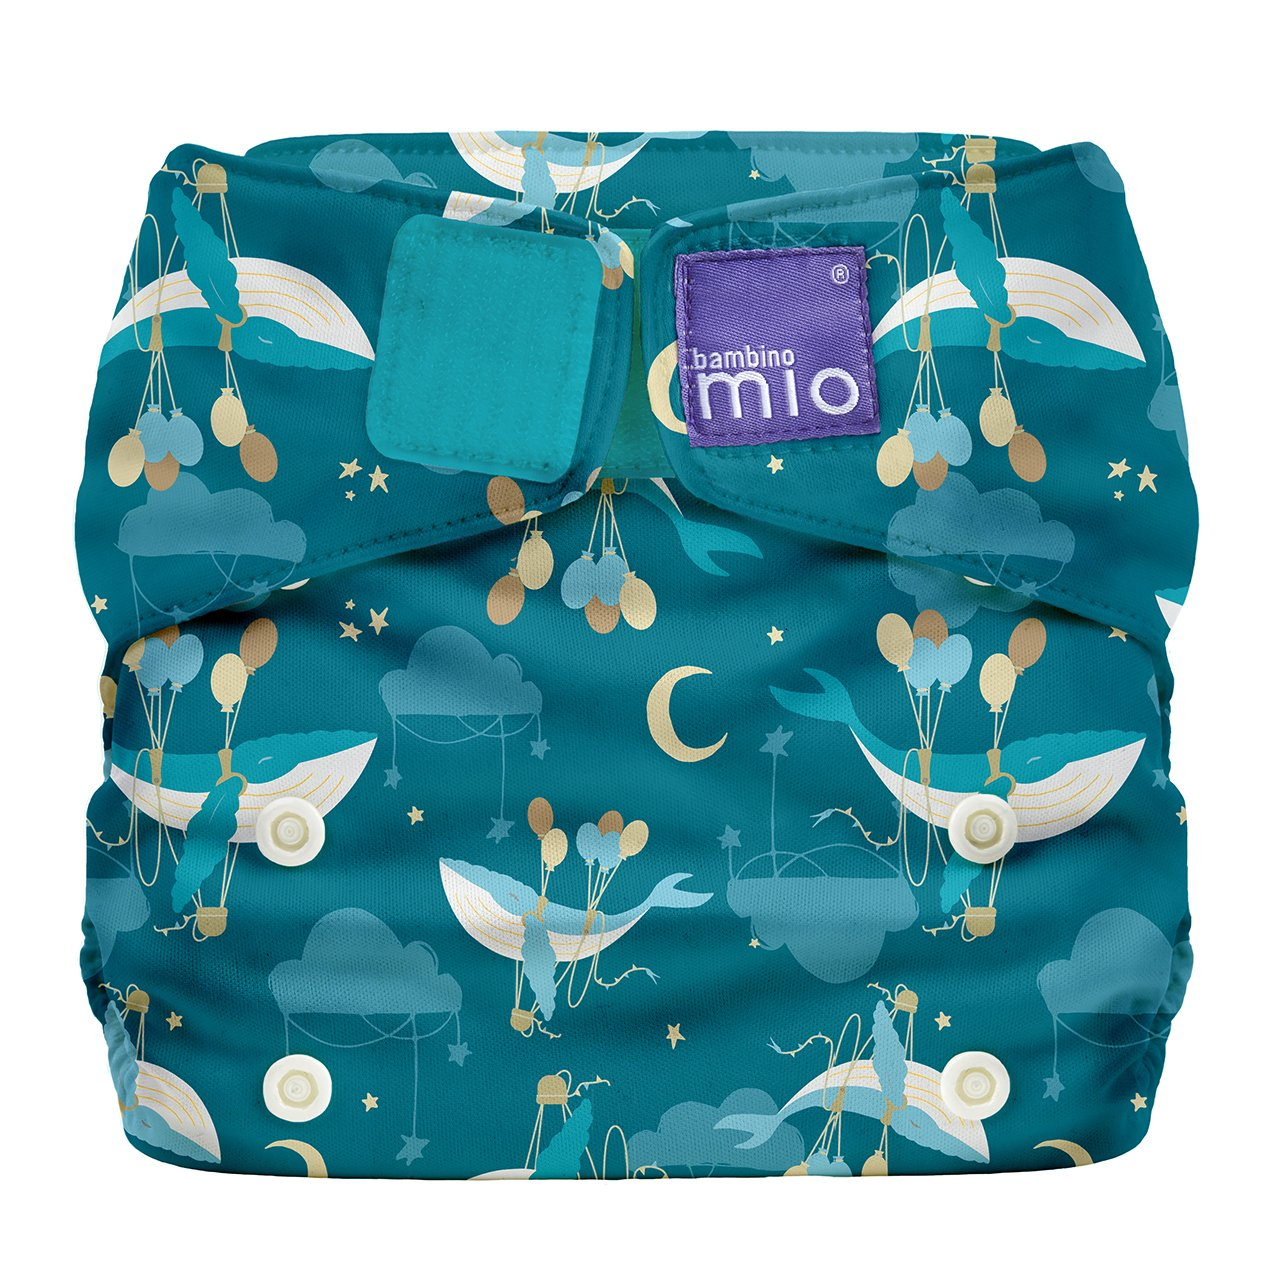 Bambino Mio Miosolo All-in-One Reusable Nappy, Tropical Toucan Bambino Mio UK SO TCN